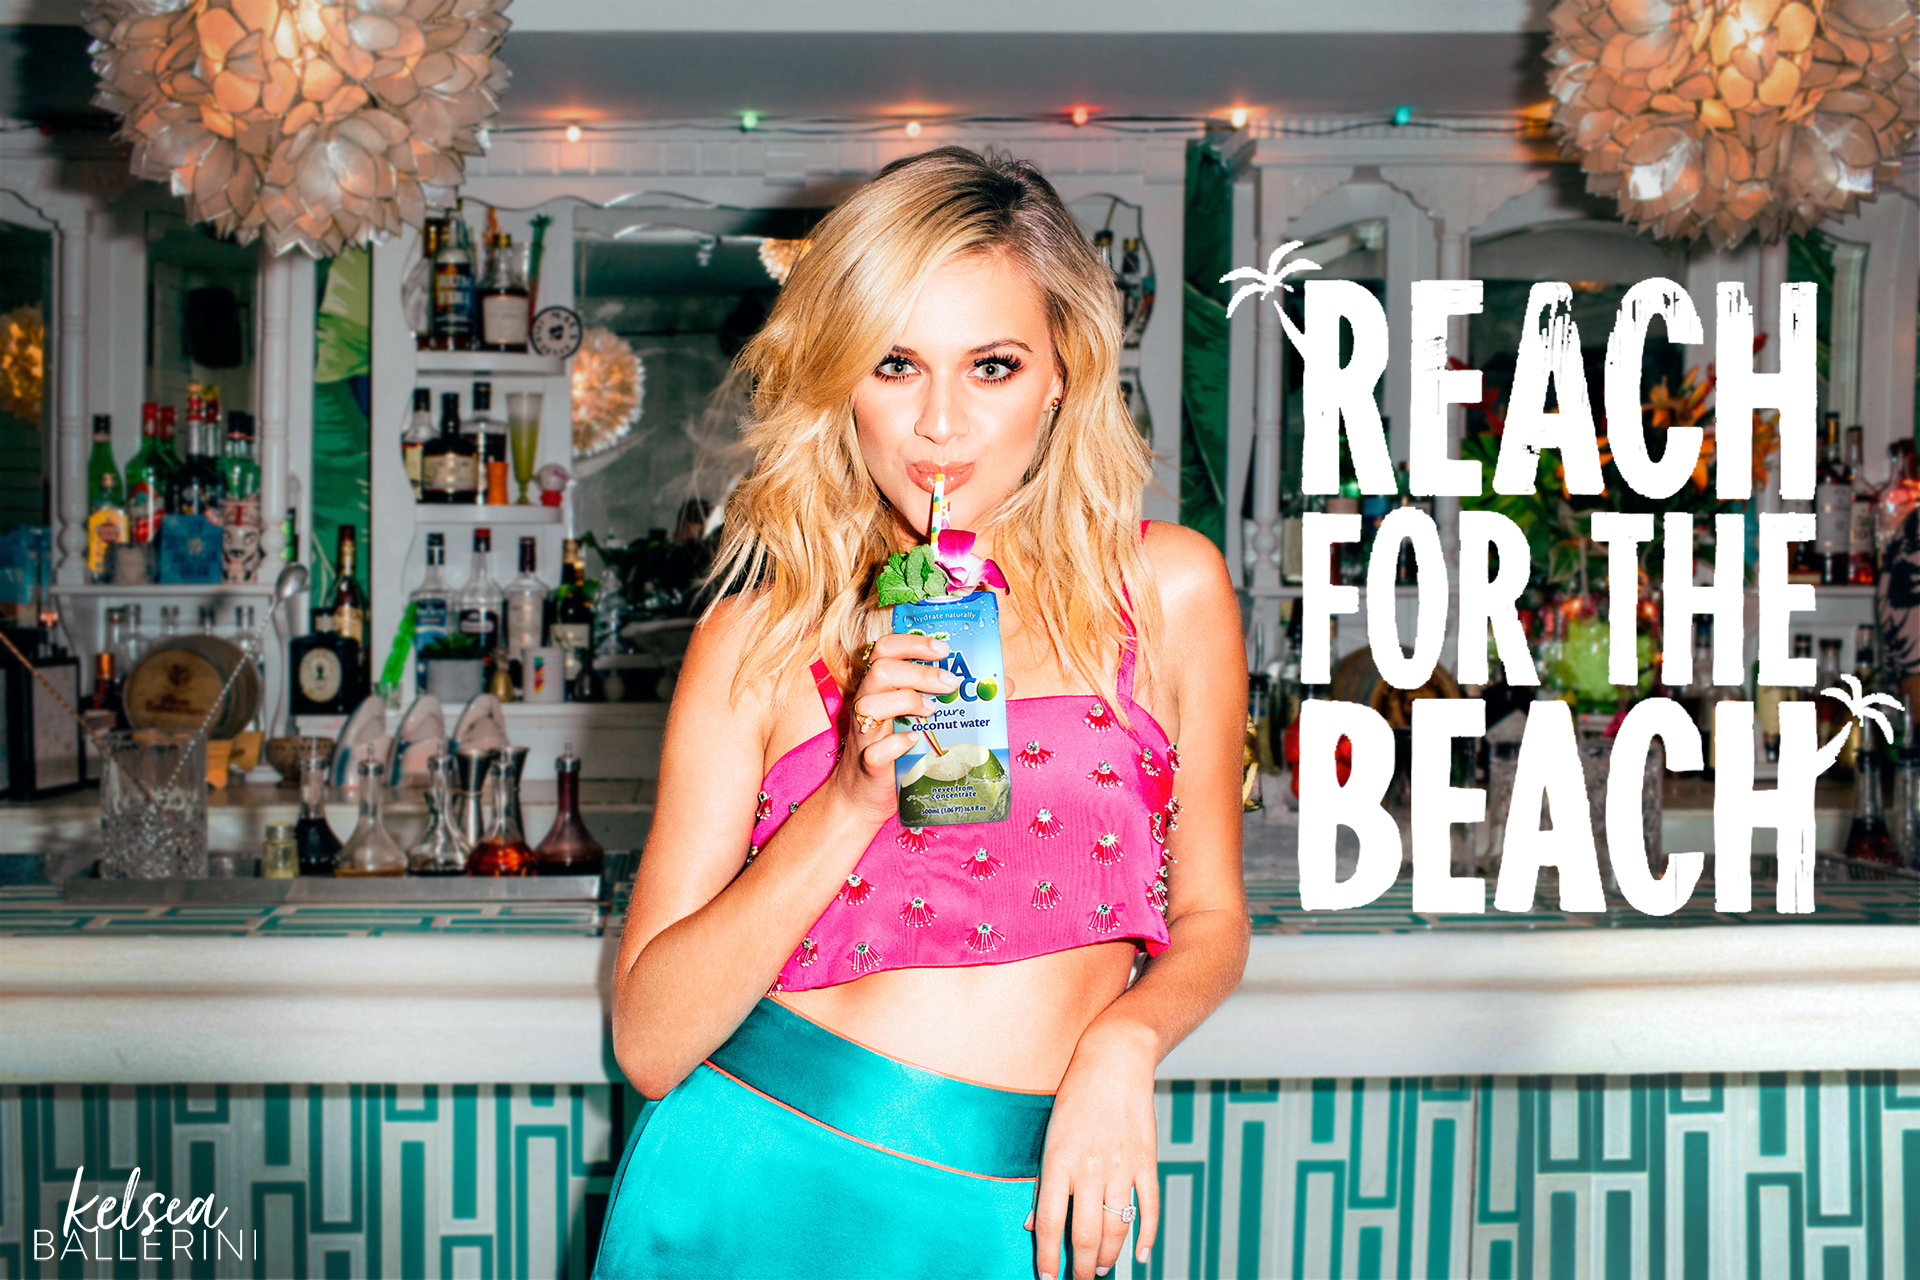 Mock up for Kelsea Ballerini x VitaCoco Brand Endorsement. 2019.